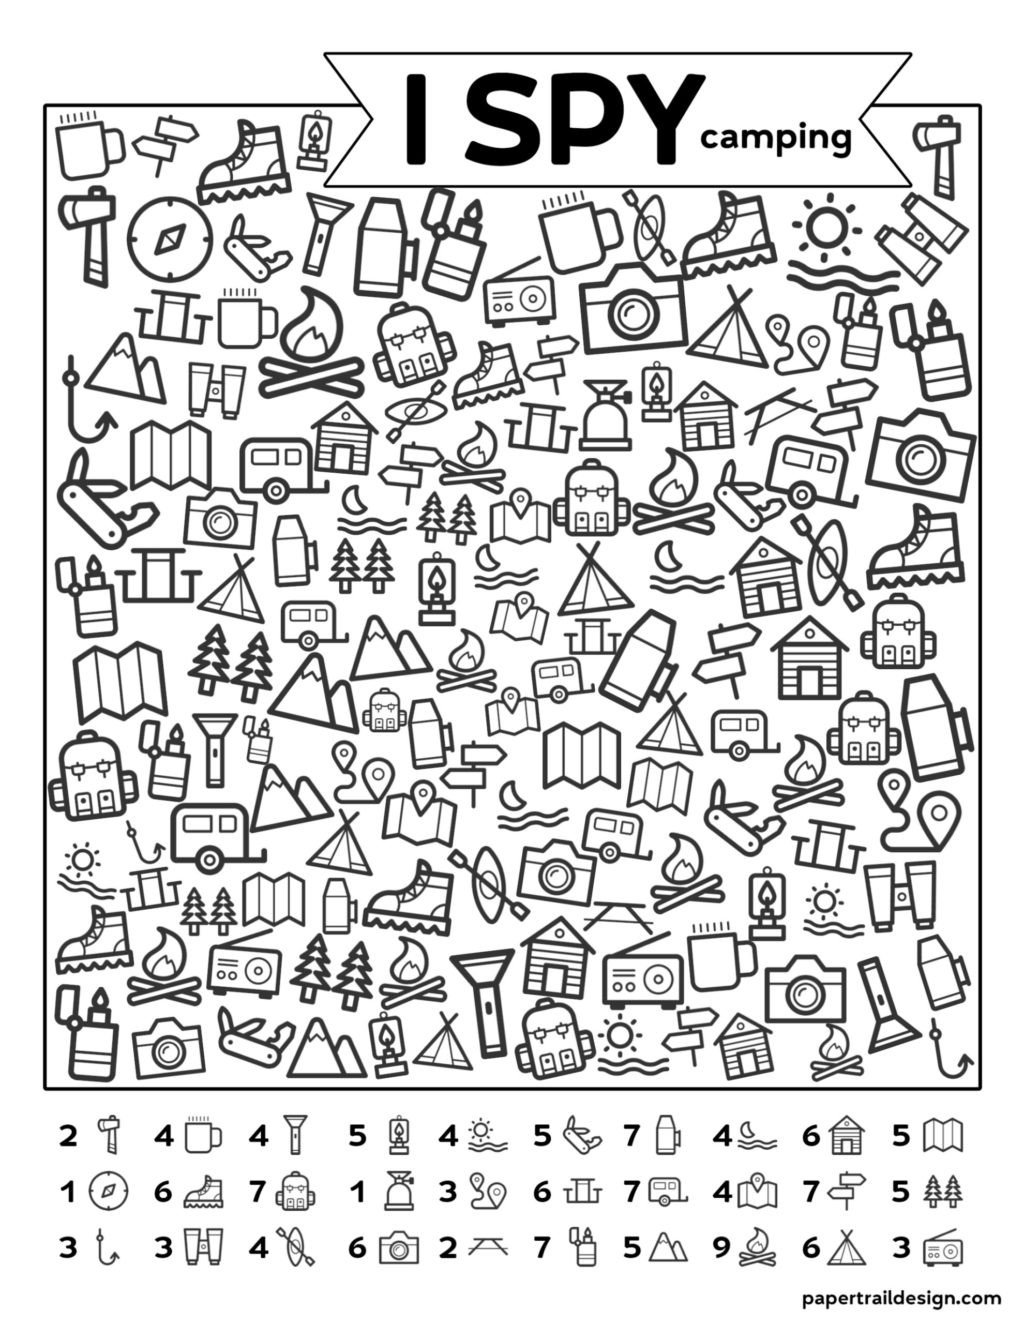 worksheet Freetable I Spy Camping Kids Activity Paper